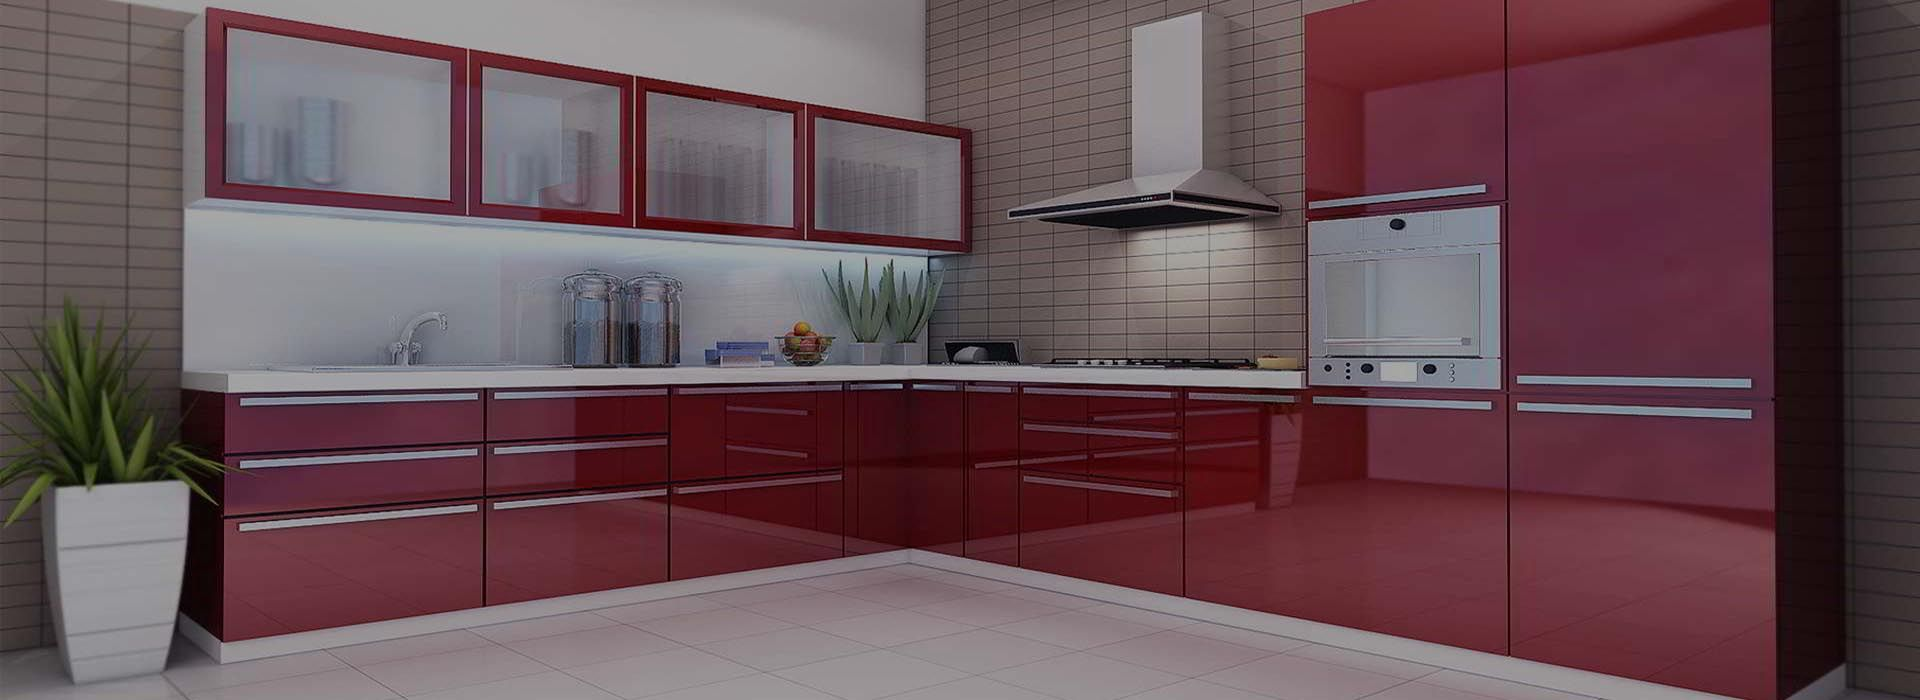 We Are The Best Modular Kitchen Interior Designers In Bangalore Providers Along With Top 10